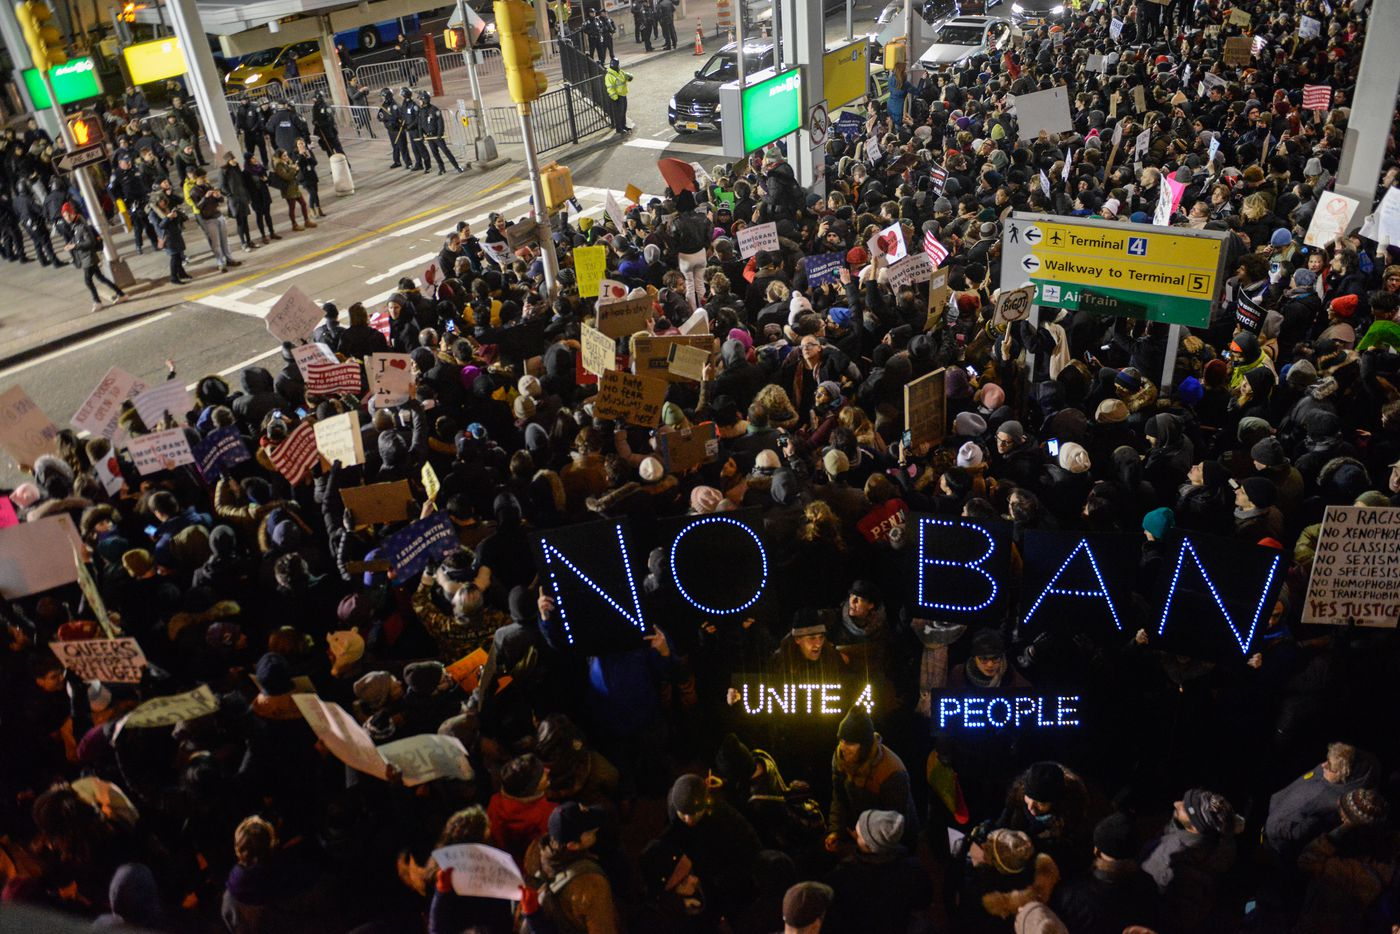 Protestors rally  during a demonstration against the Muslim immigration ban at John F. Kennedy International Airport on January 28, 2017 in New York City.